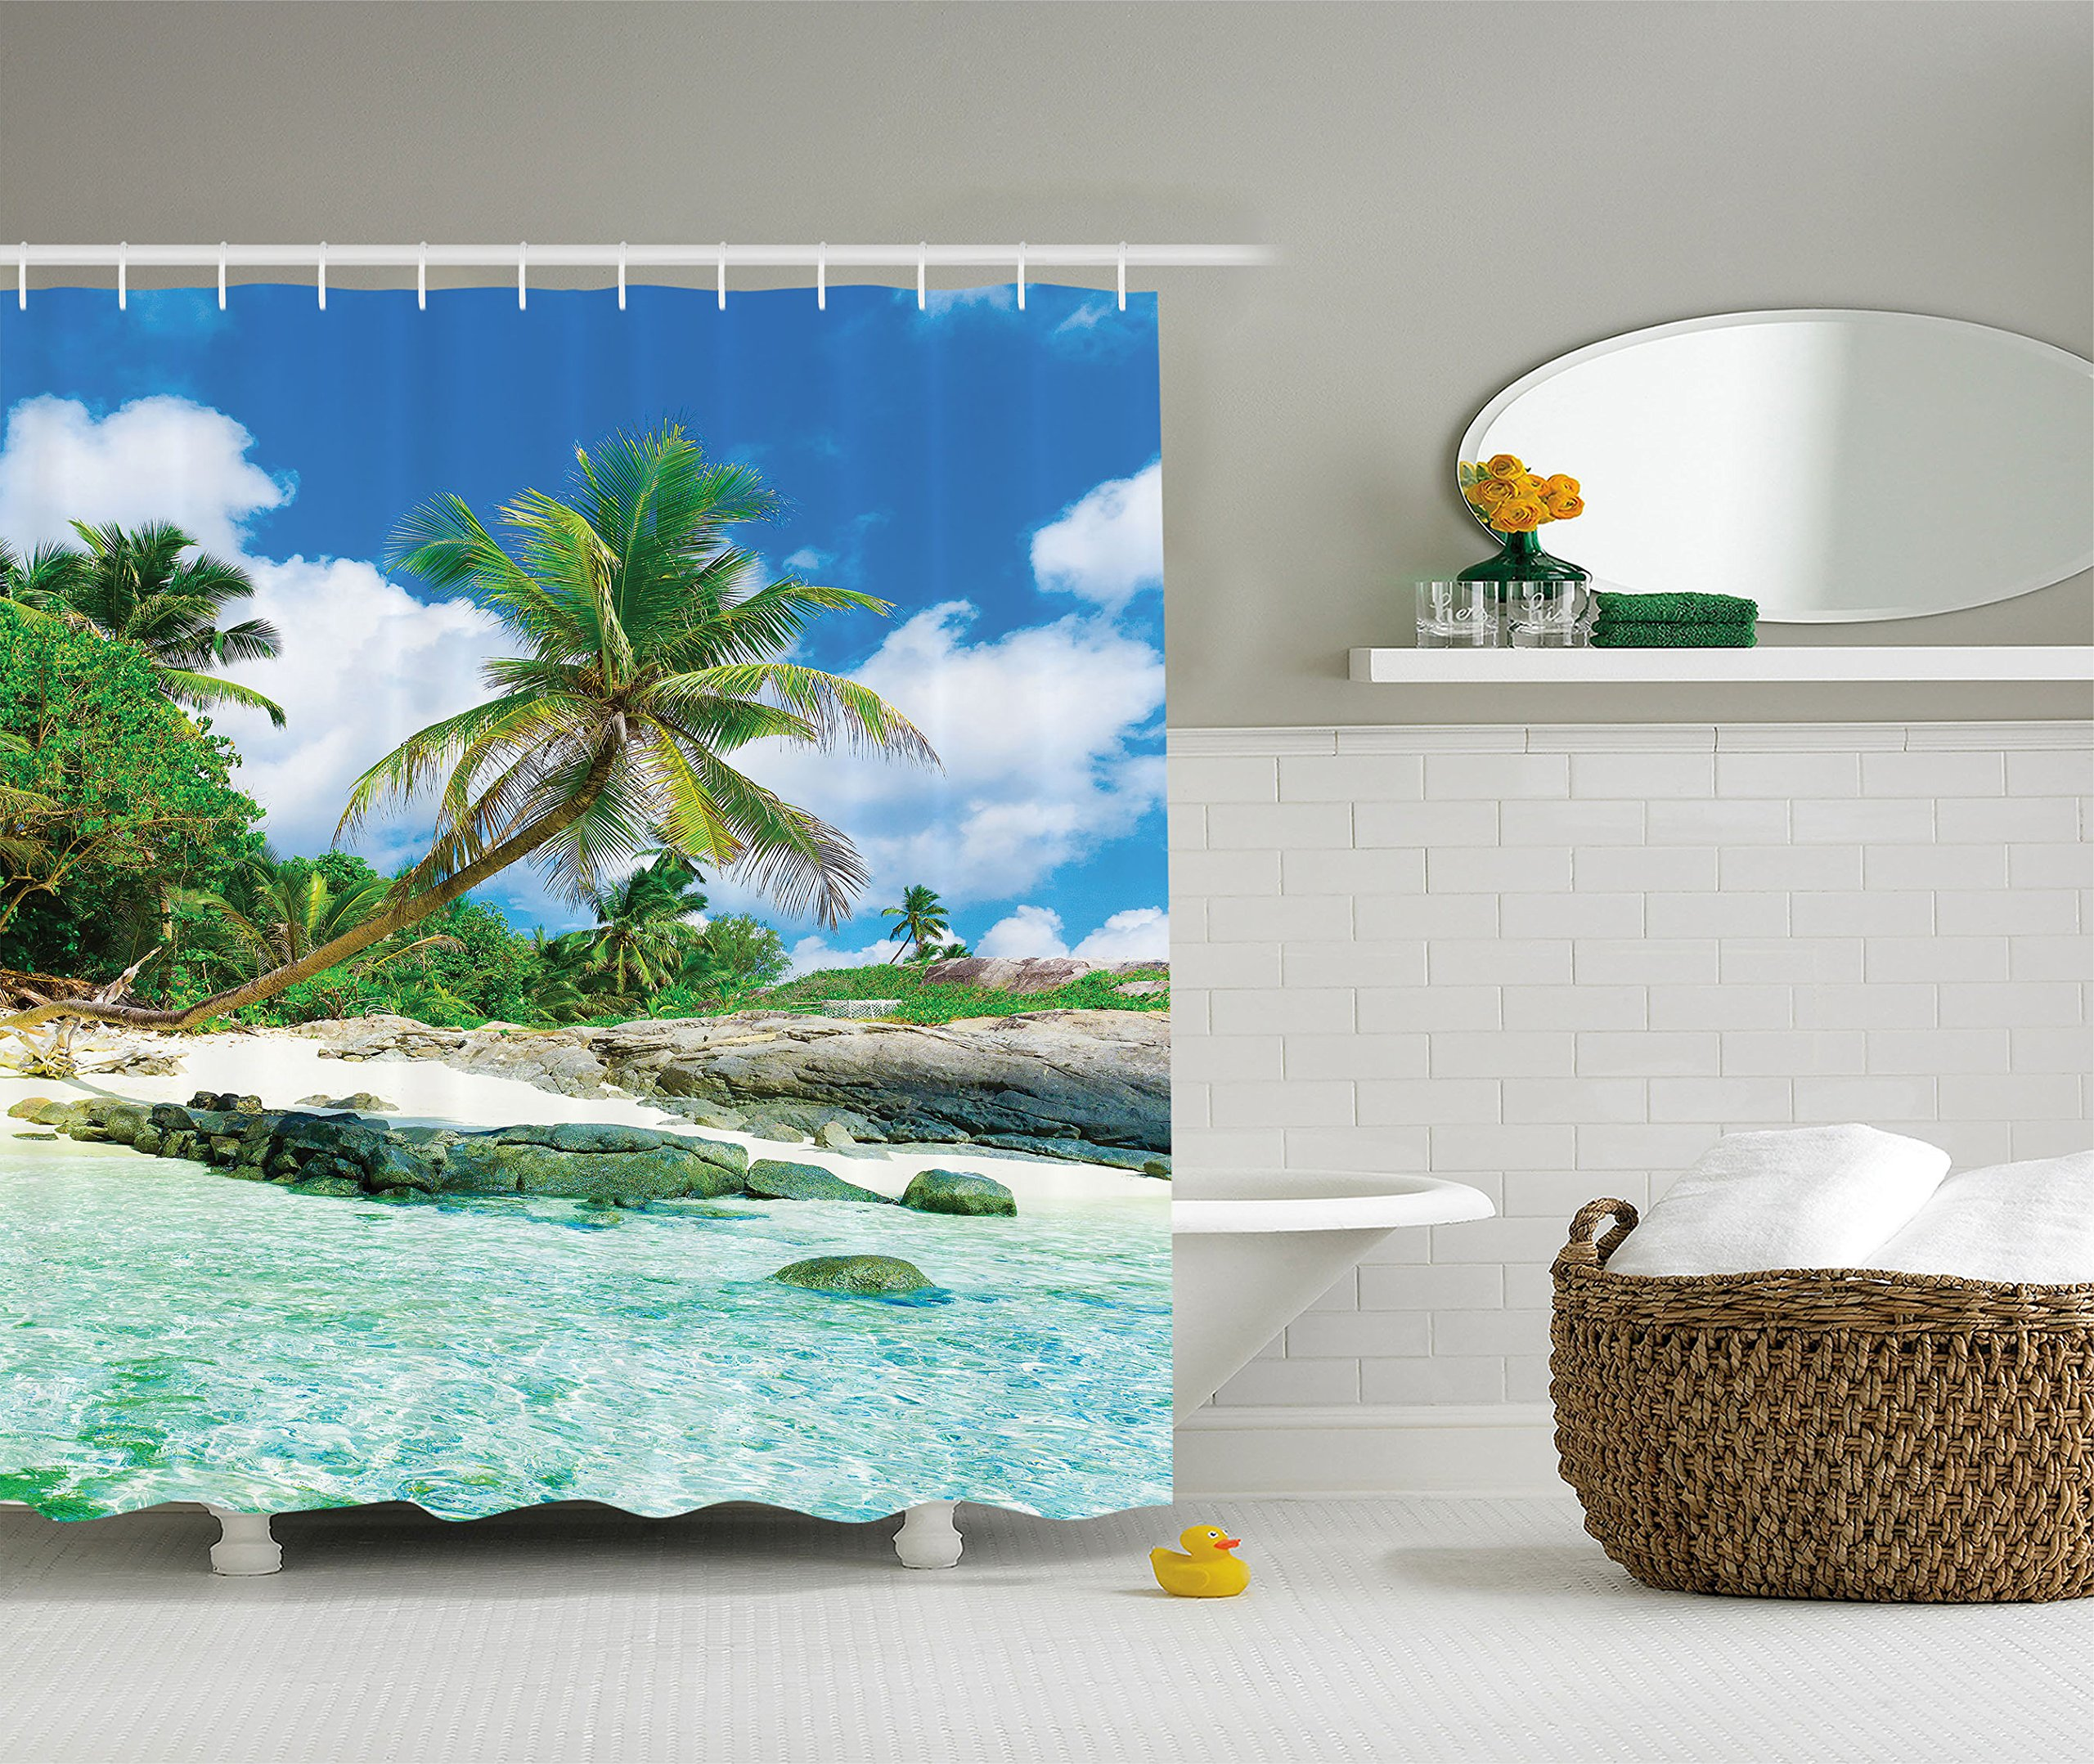 Ambesonne Seaside Decor Collection, Scene Rocks Palms shades jungle honeymoon islands remote resort leisure, Polyester Fabric Bathroom Shower Curtain, 84 Inches Extra Long, Teal Green Blue